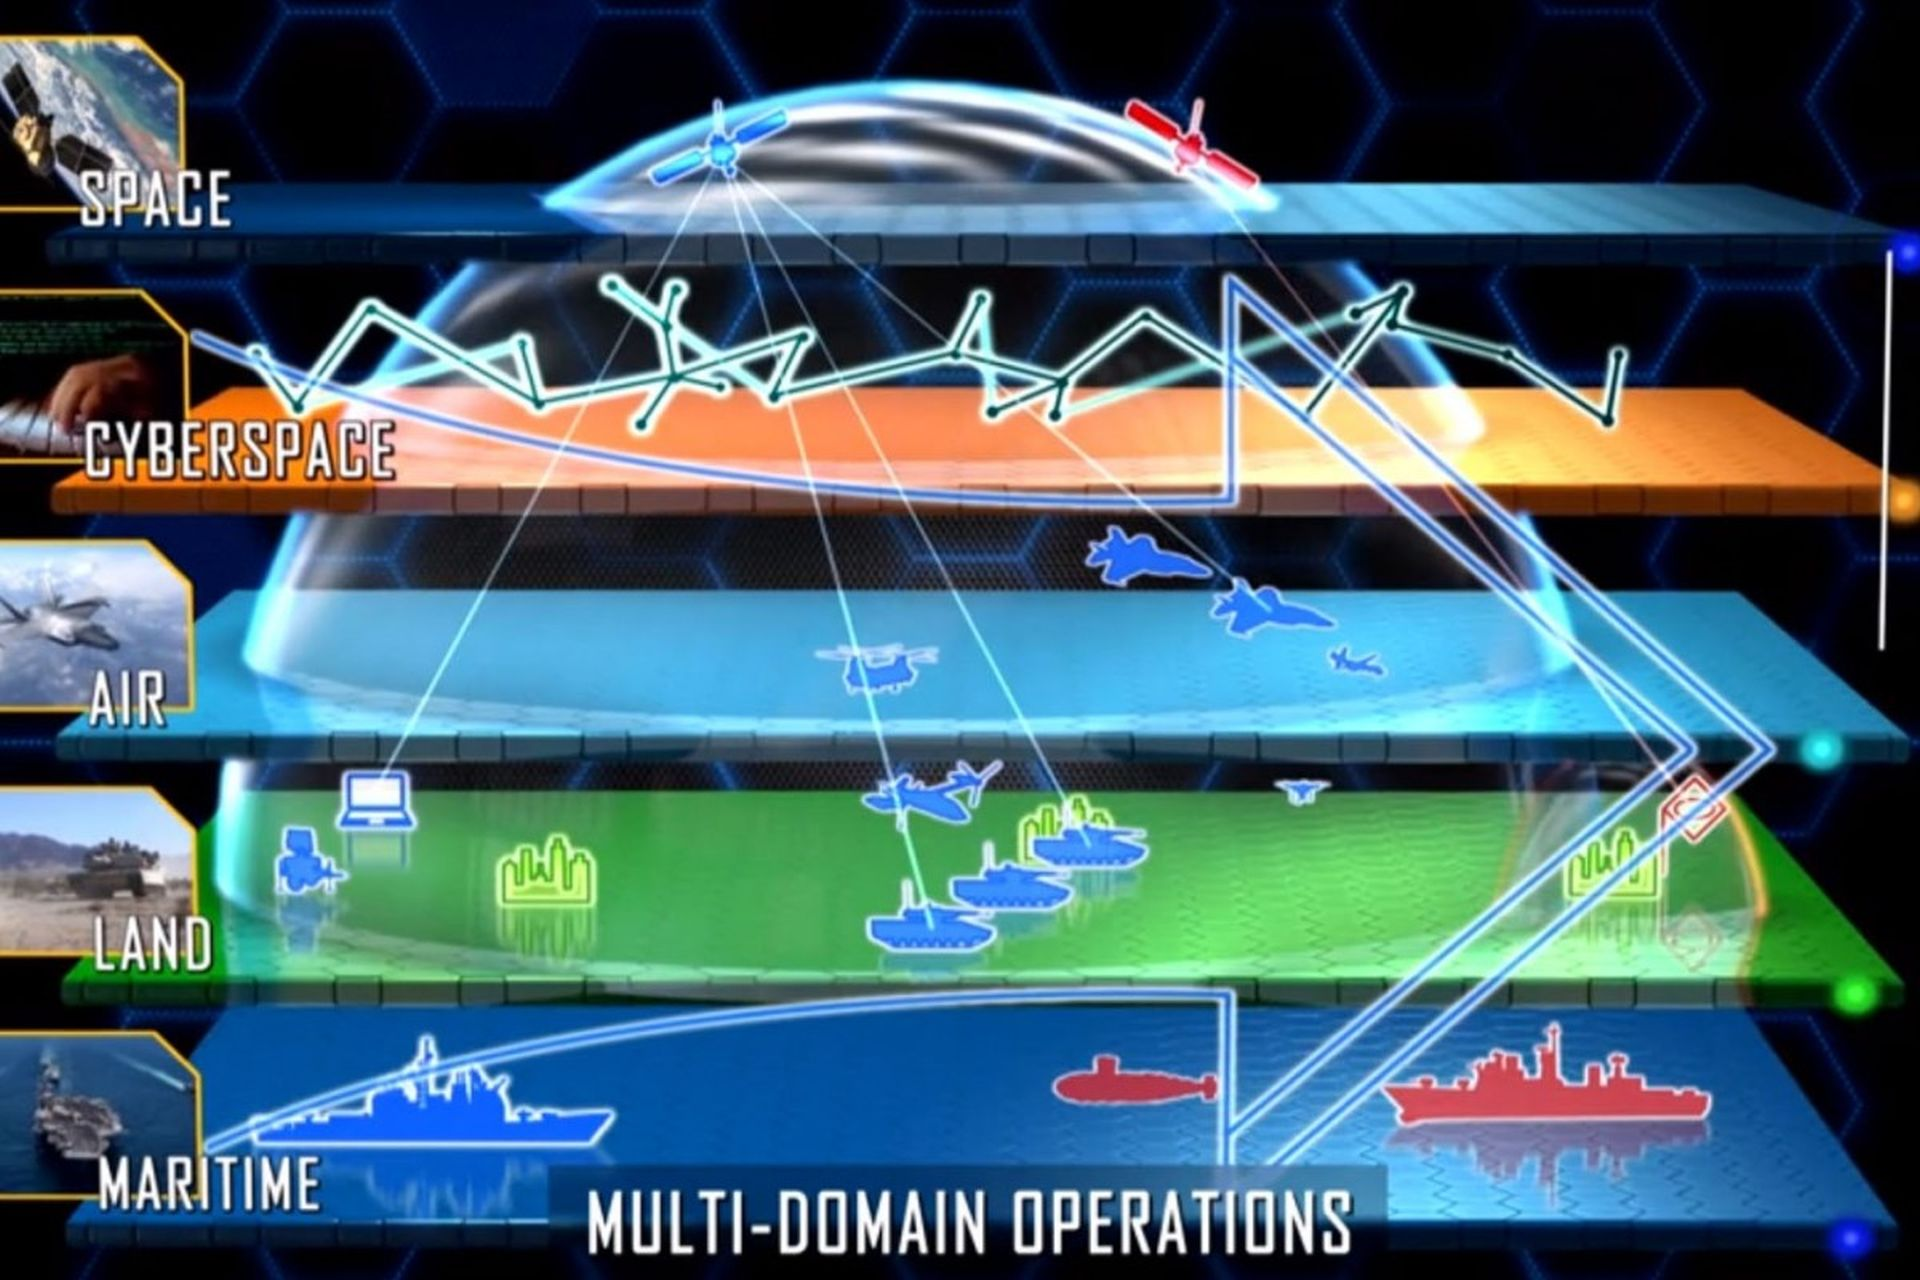 Multi-Domain Operations